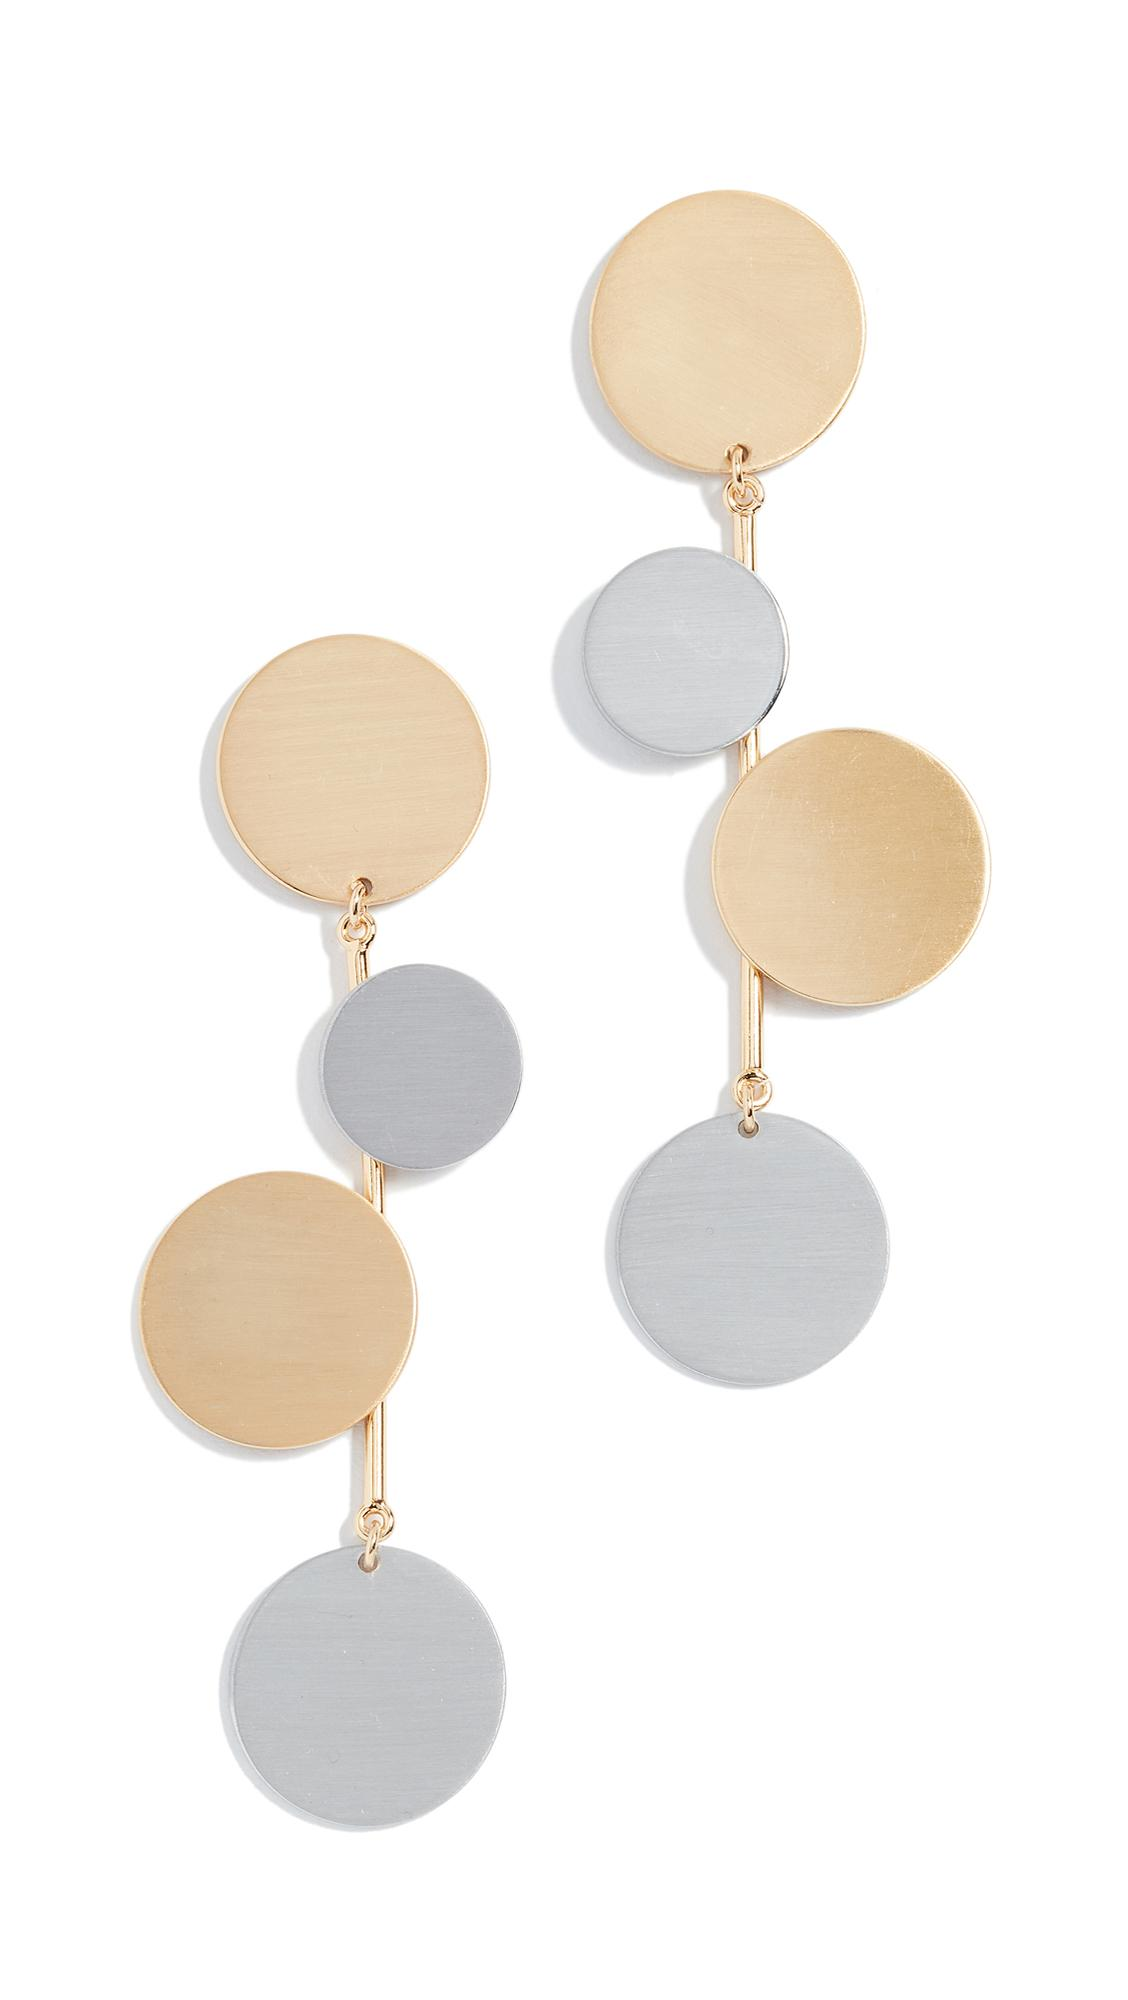 Baublebar Rona Drop Earrings In Yellow Gold Multi